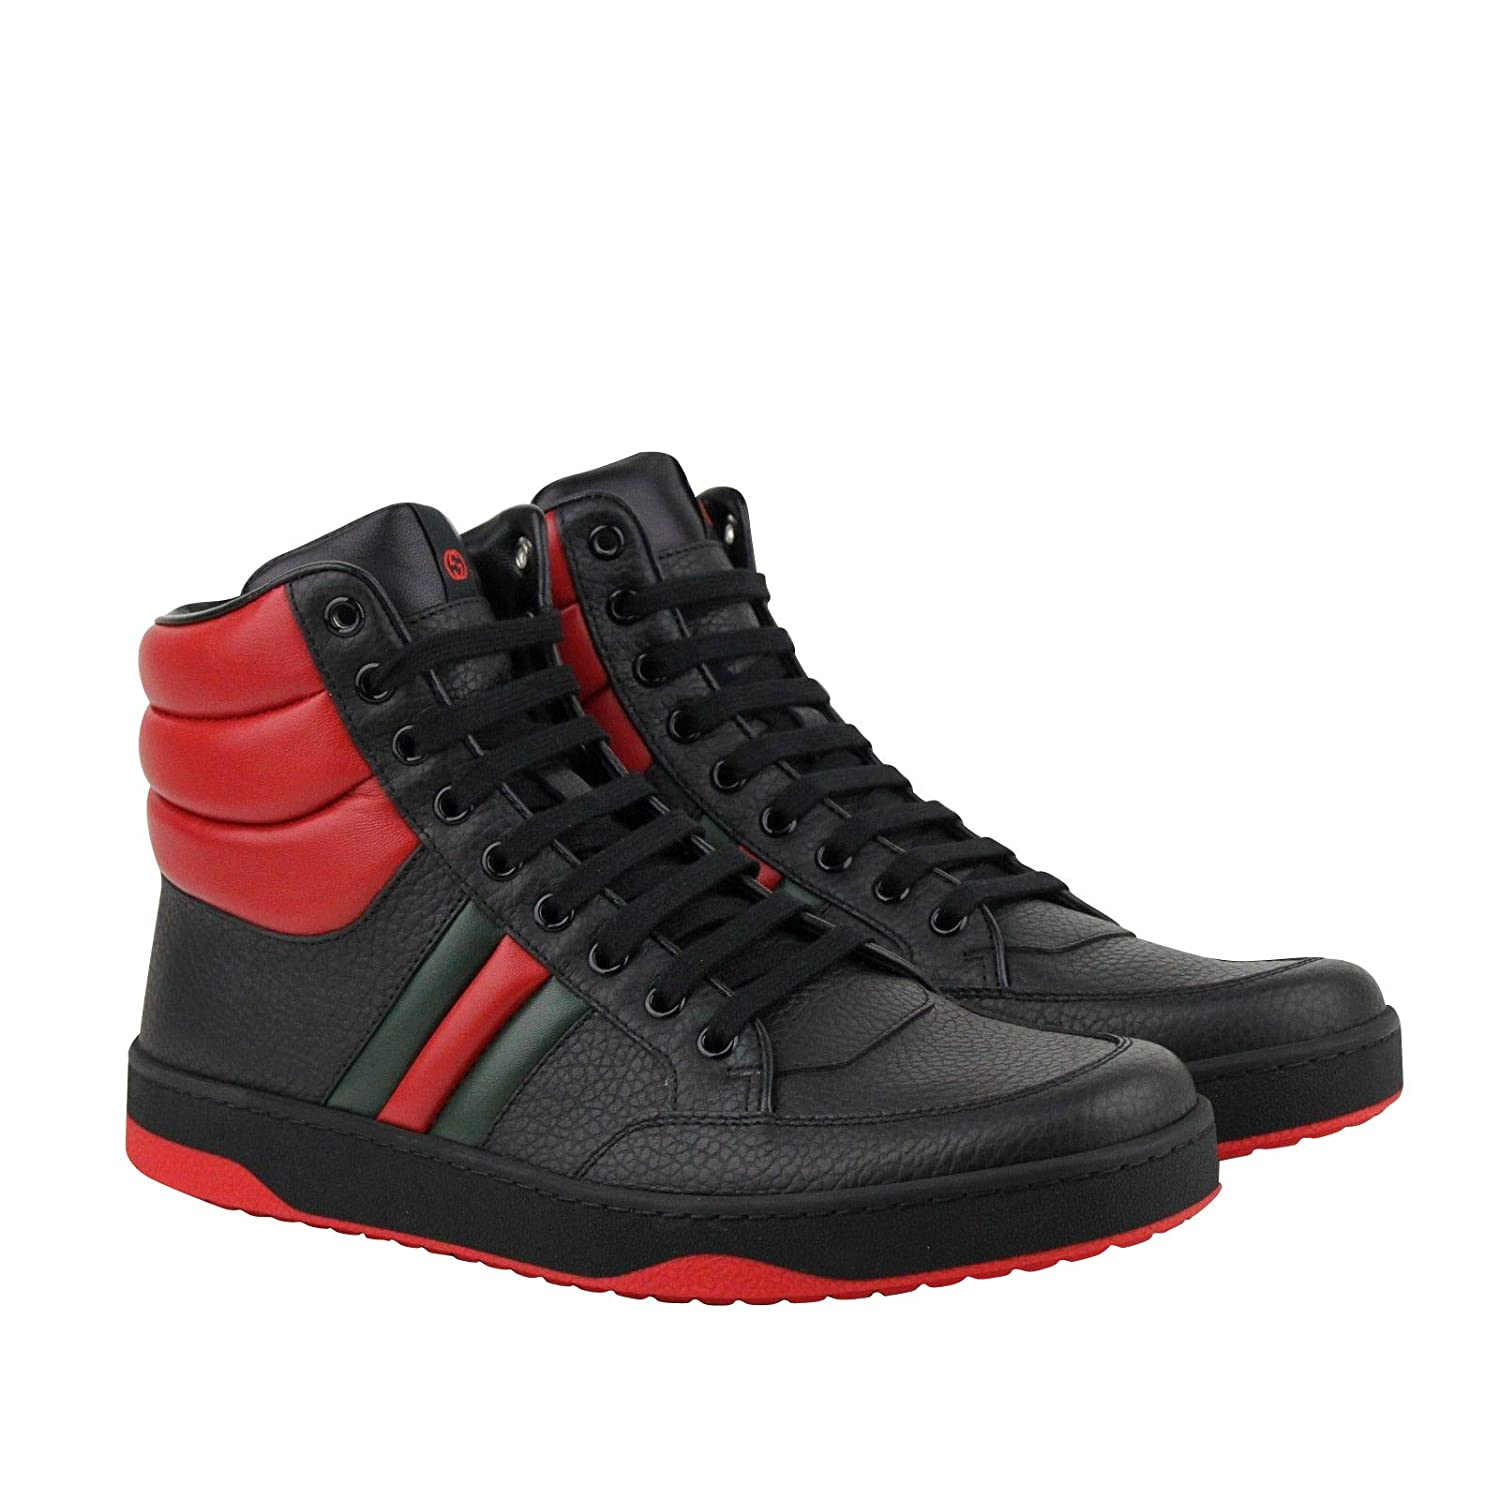 Gucci Red sneakers Amazon.com: Gucci Men's GRG Web Detail Black/Red Leather Hi Top Sneakers  368494 1074 (8 G/US 8.5): Shoes